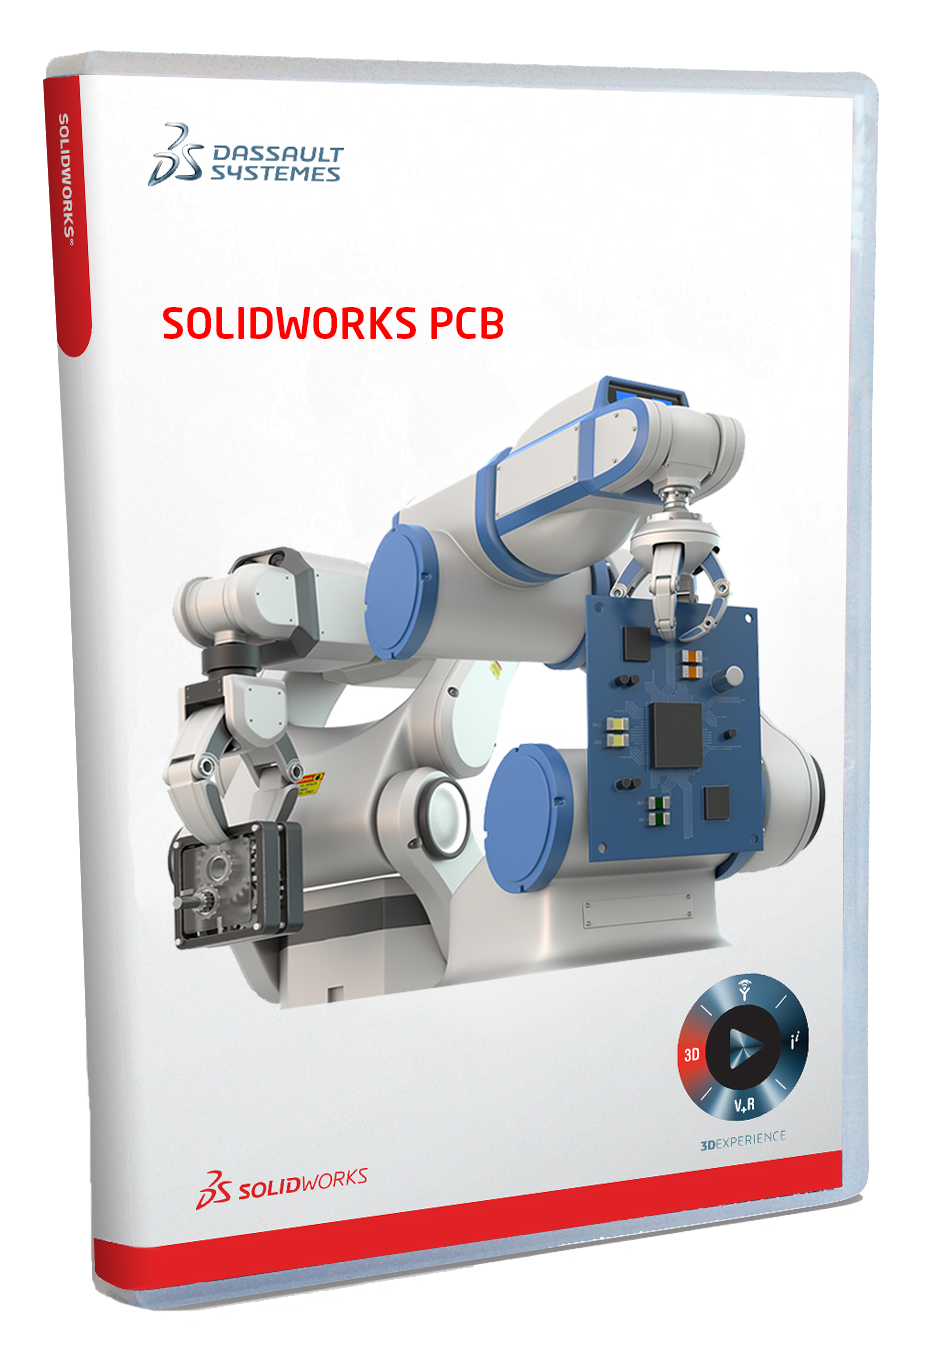 Electronic Design - Solidworks electrical schematic serial number